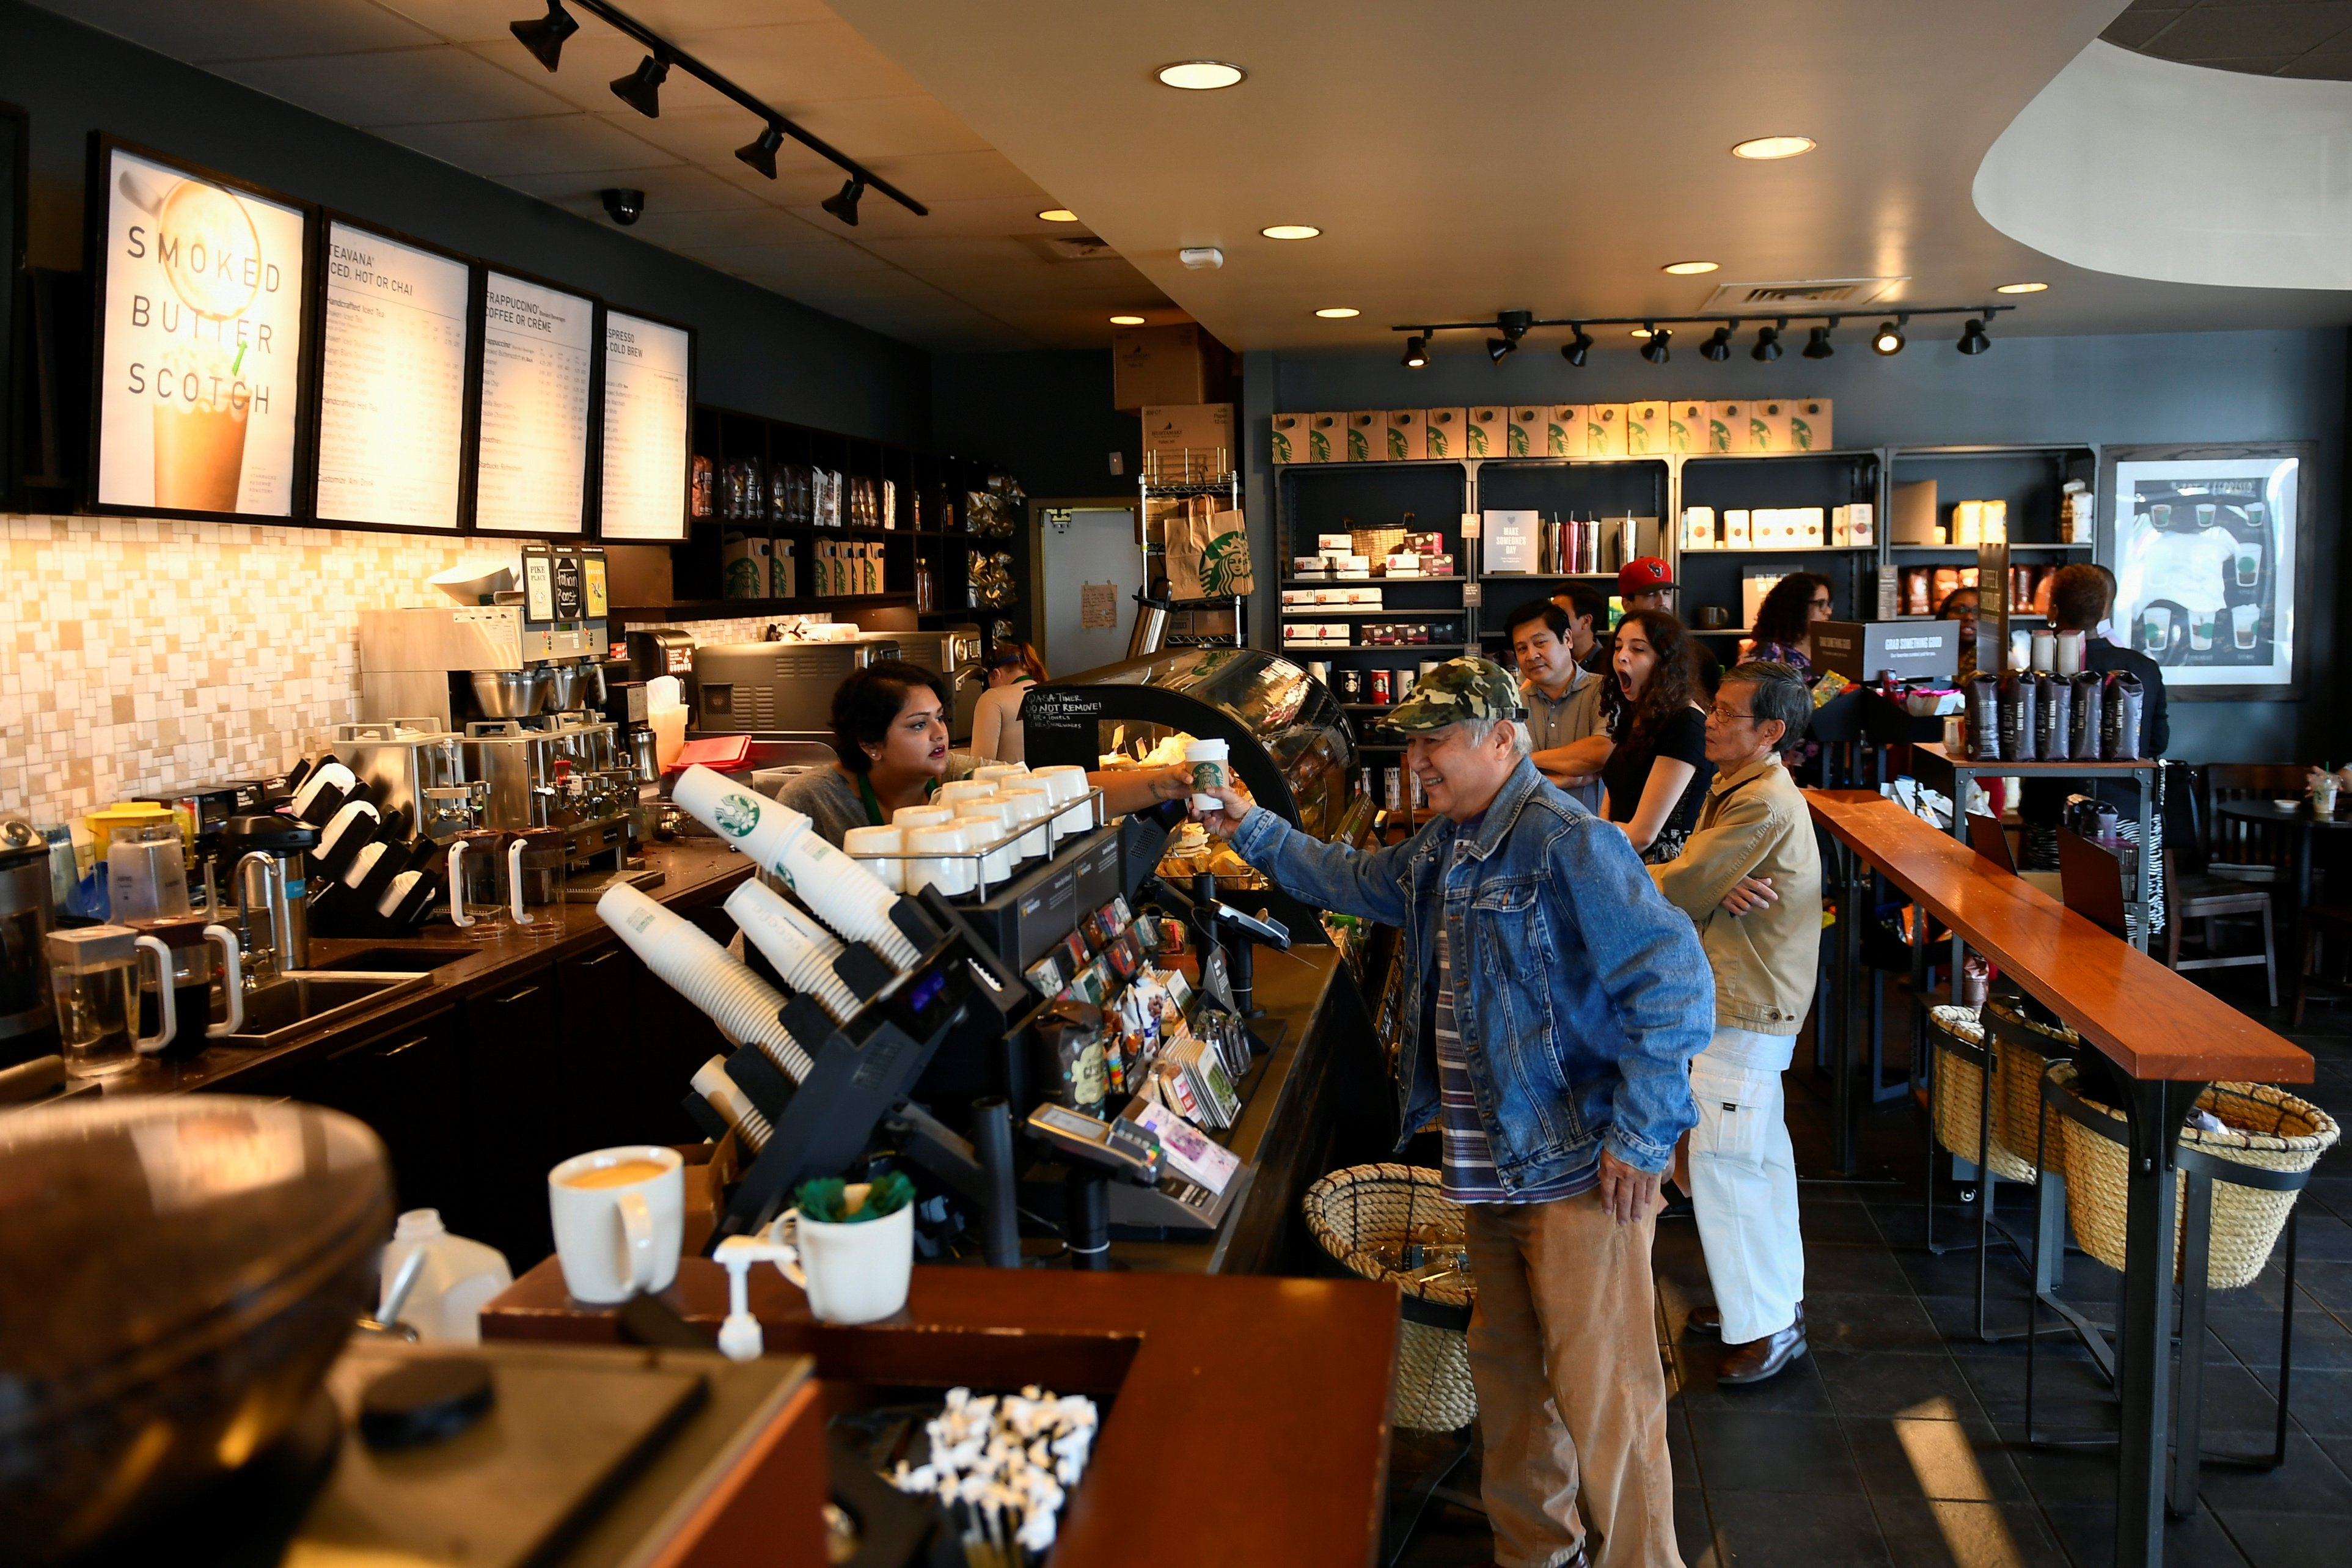 Customers stand in line at a Starbucks coffeehouse in Austin, Texas, U.S., February 11, 2017. Picture taken February 11, 2017. REUTERS/Mohammad Khursheed - RC11FDA5A660